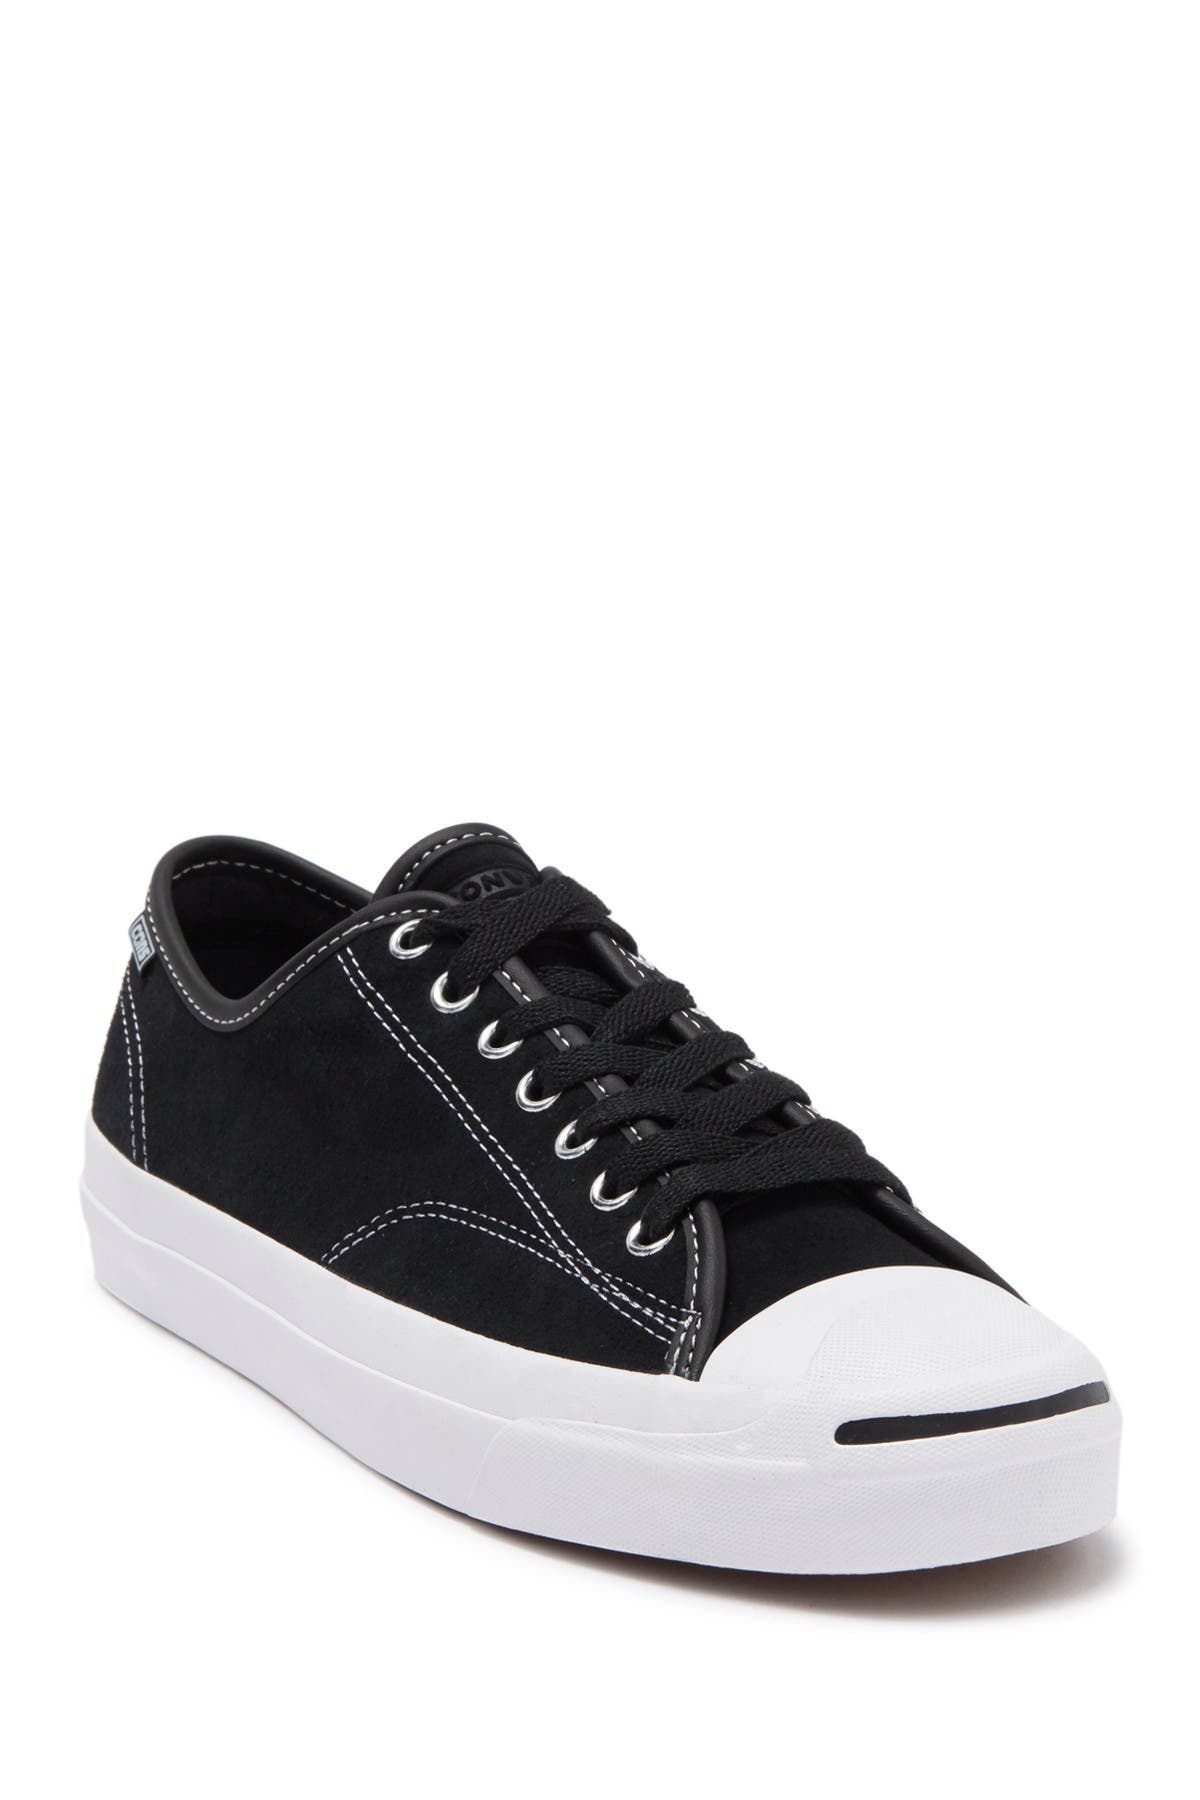 Image of Converse Pro Ox Sneaker